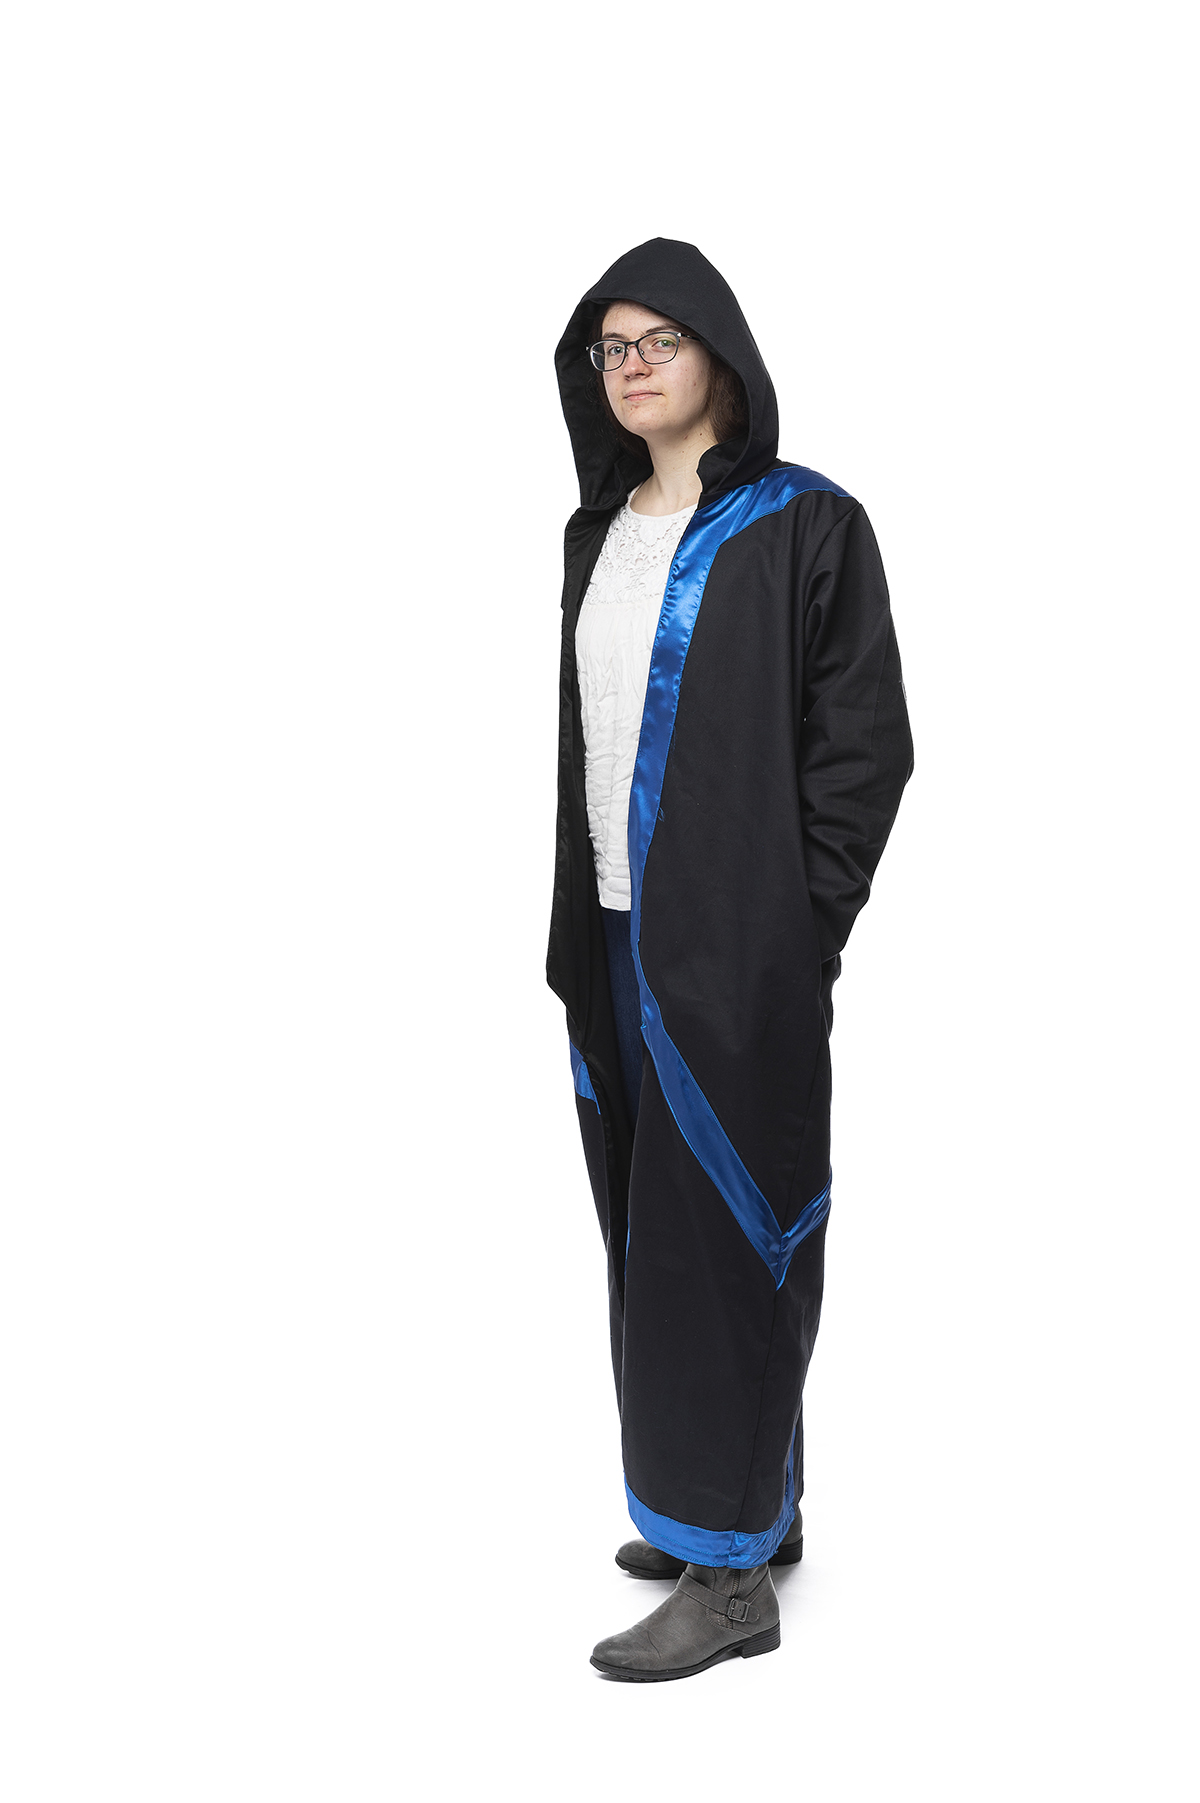 A blue and black design of a robe.